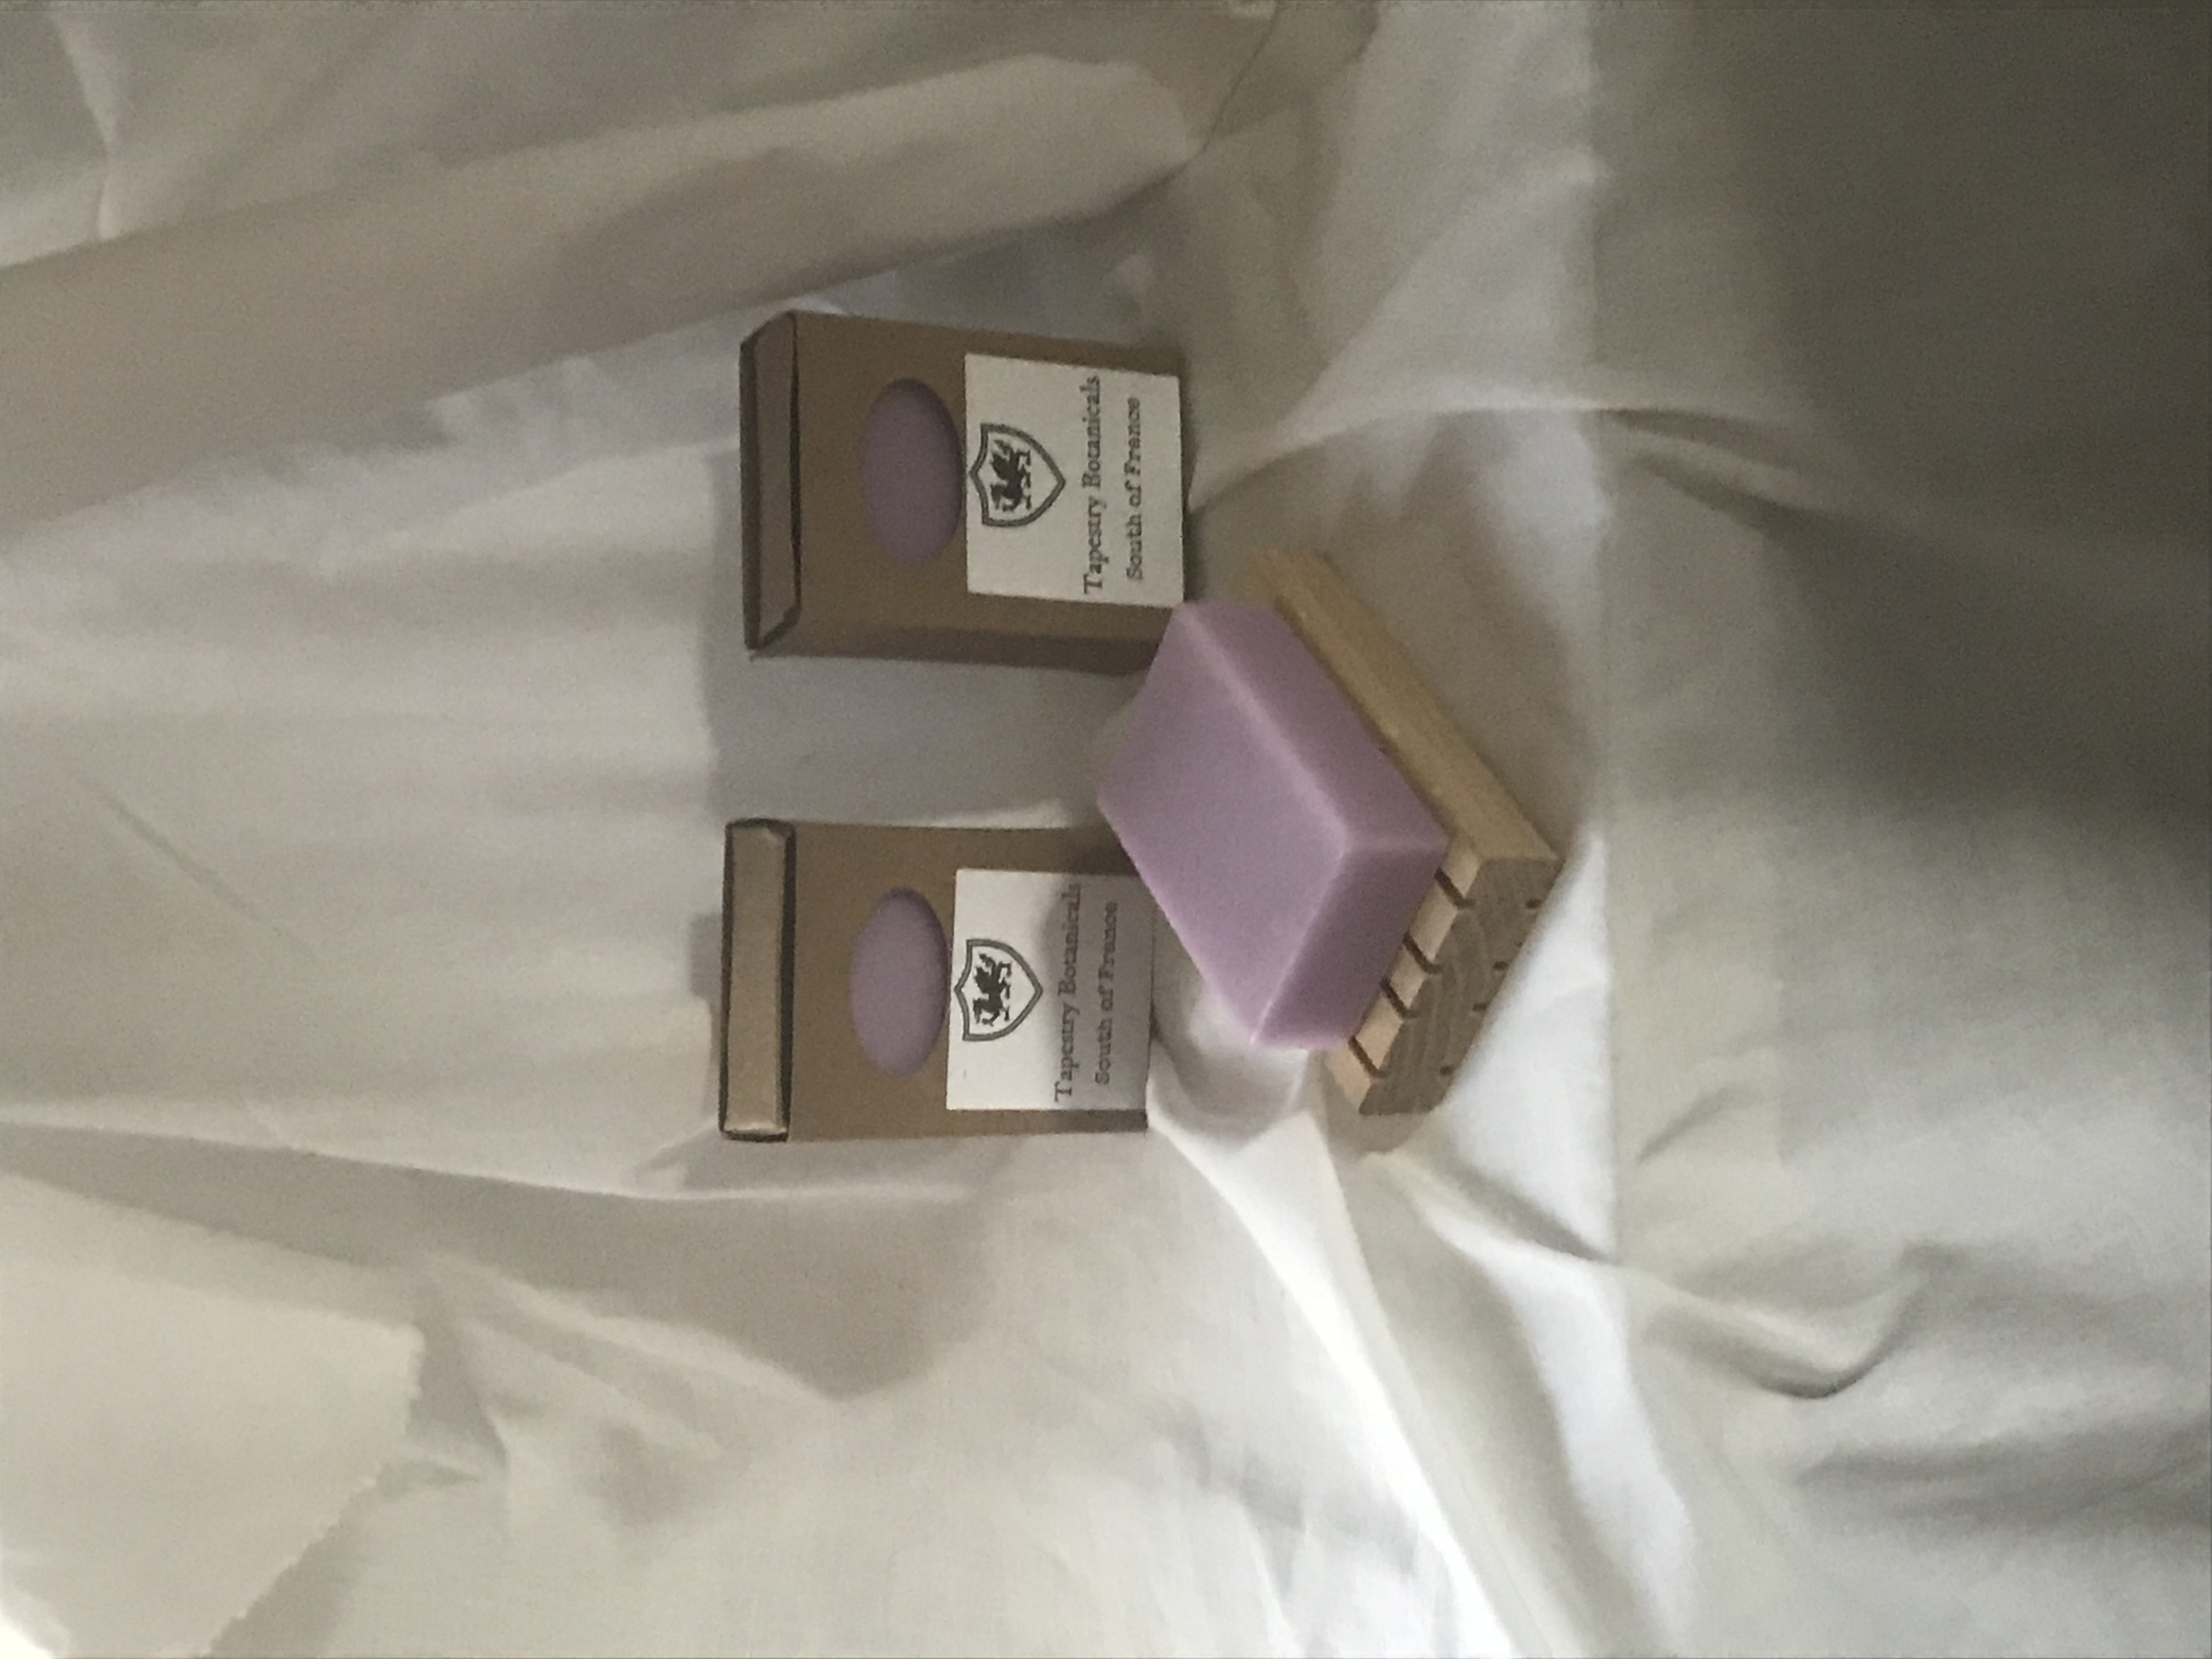 ff1594993e86 South of France  Handmade French Inspired Soap